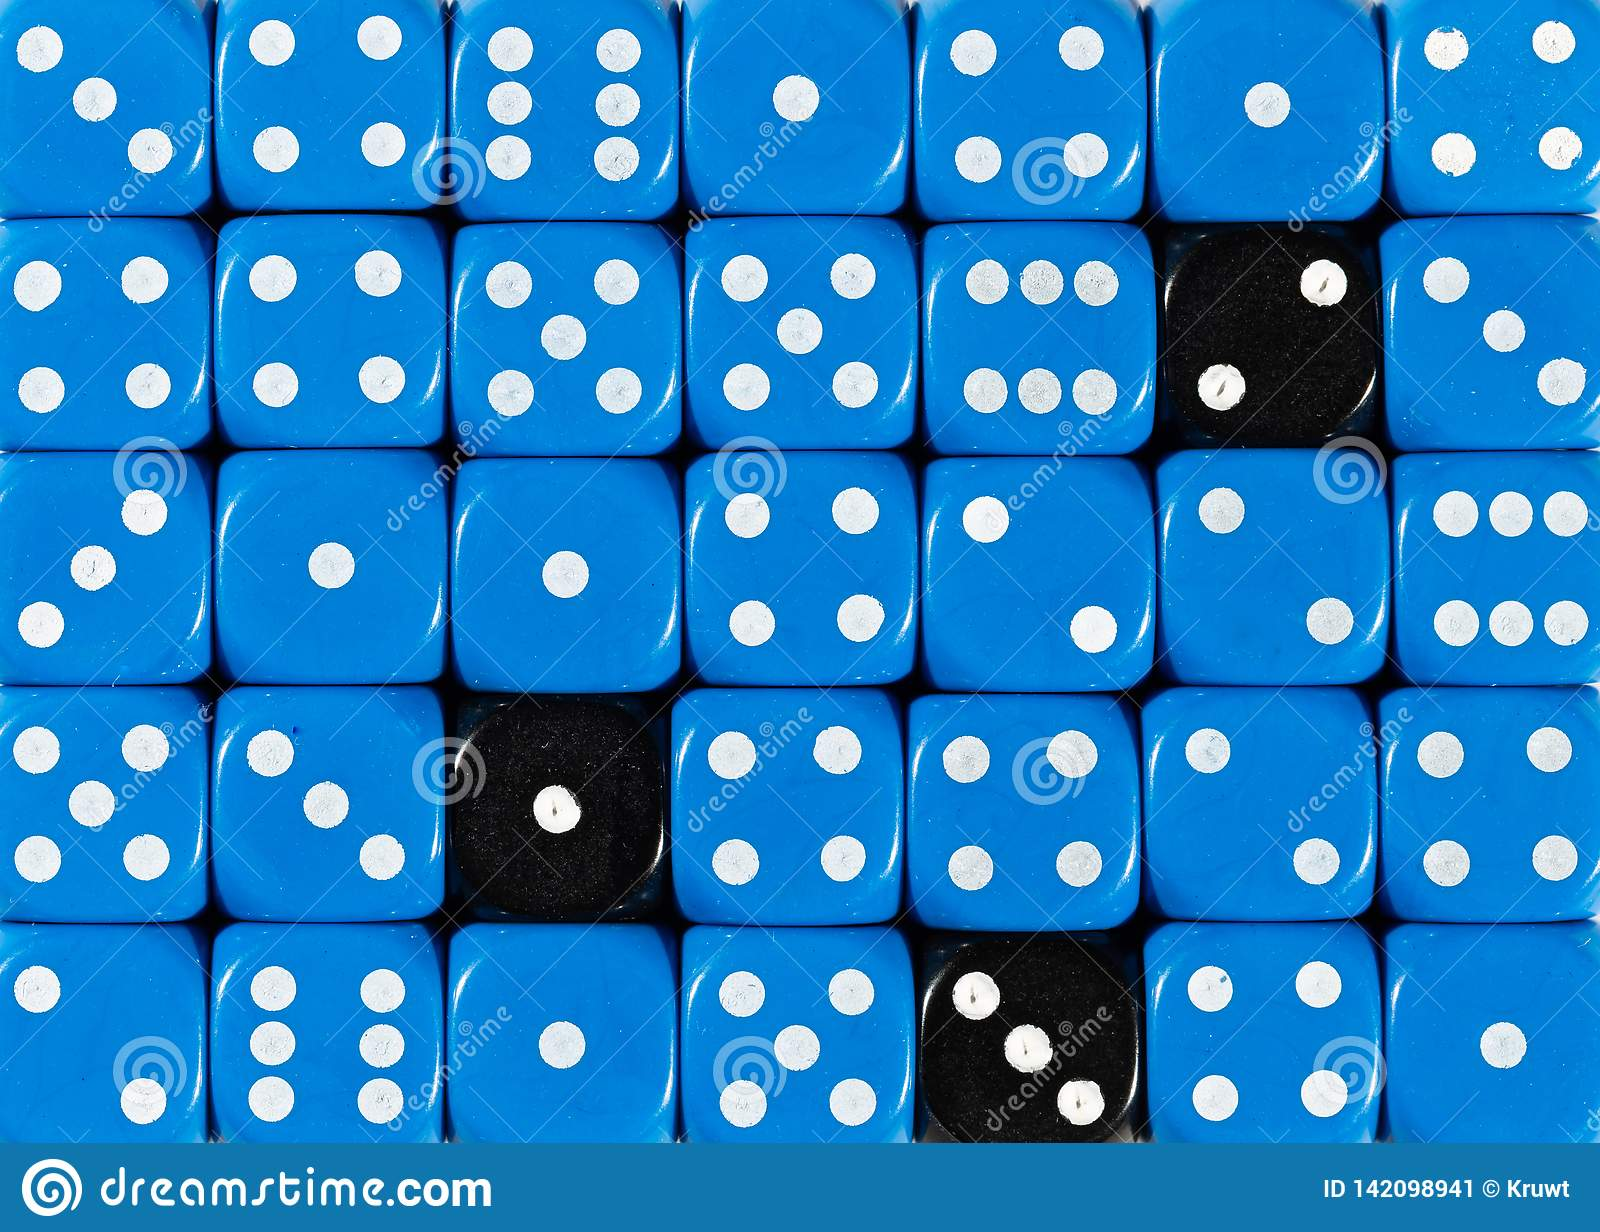 Background of random ordered blue dices with three black cubes